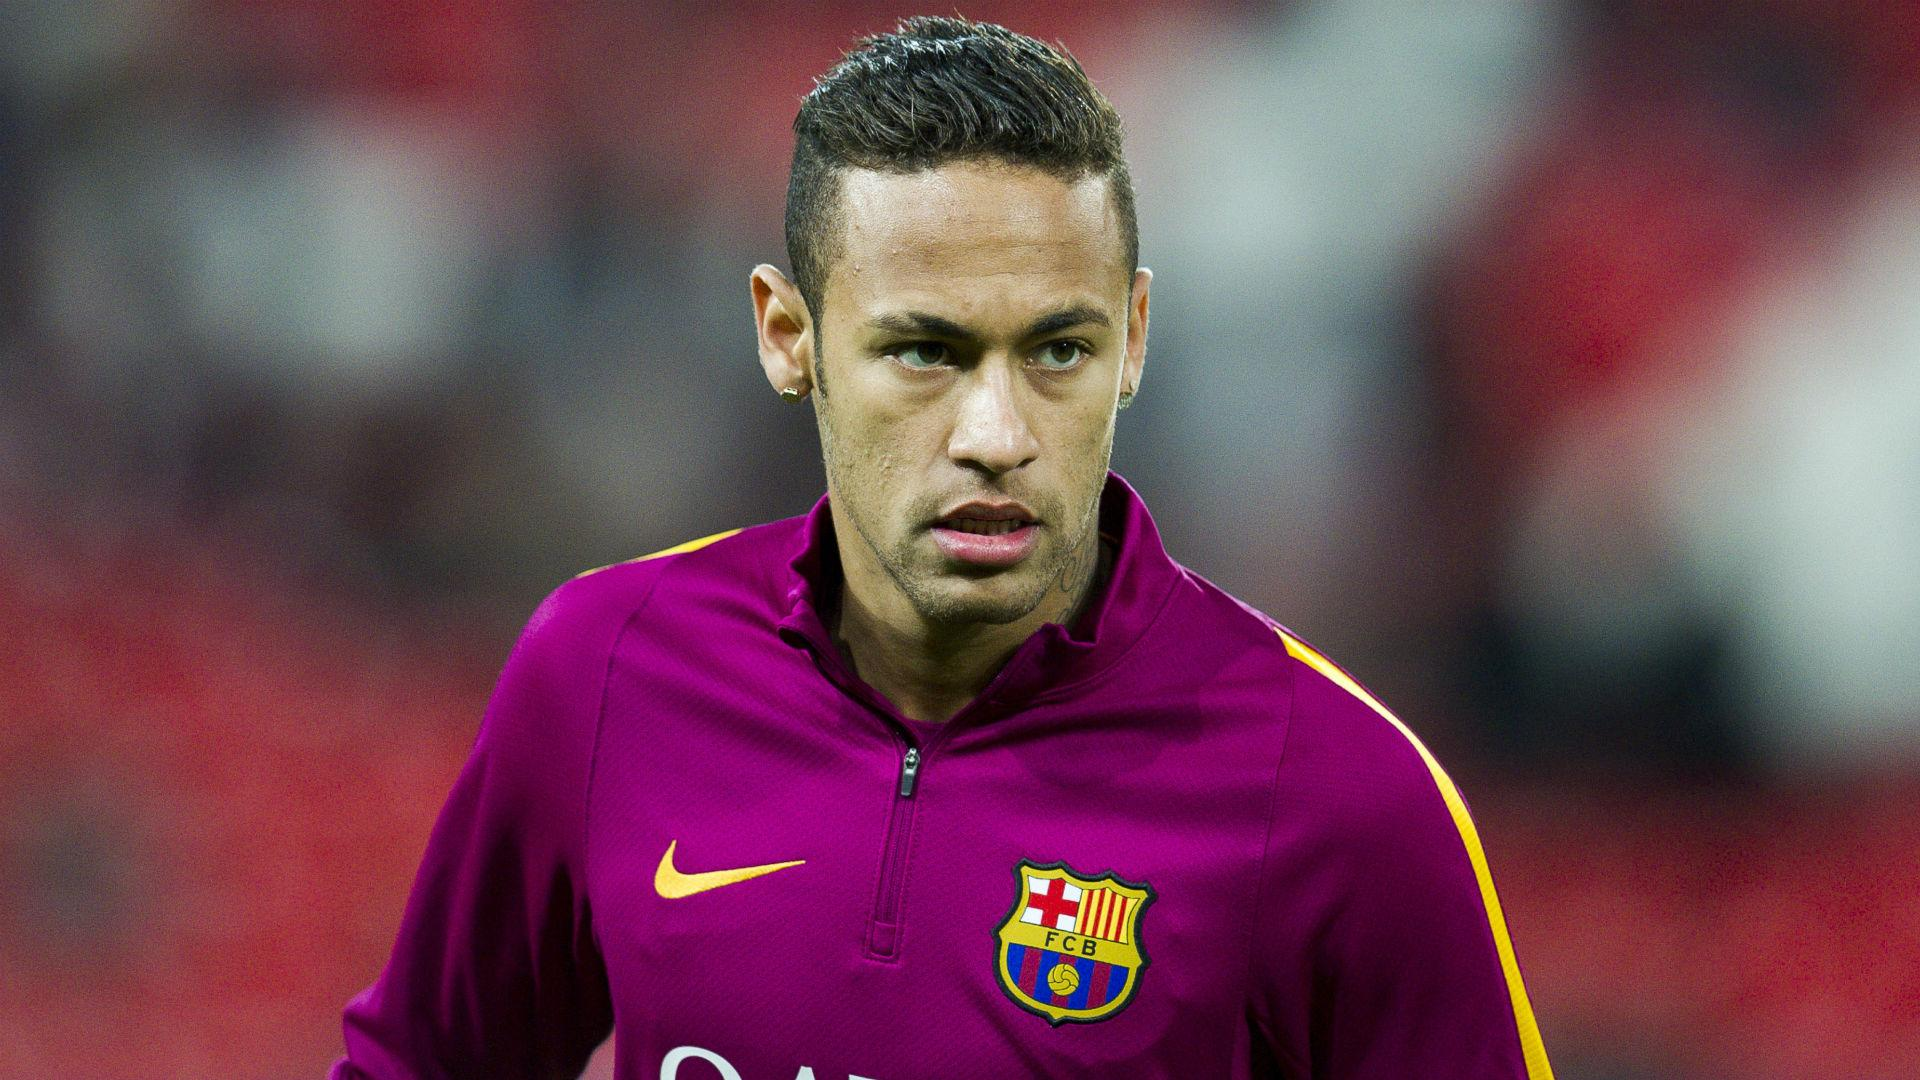 Luis Enrique urges Neymar to cope with off-field distractions